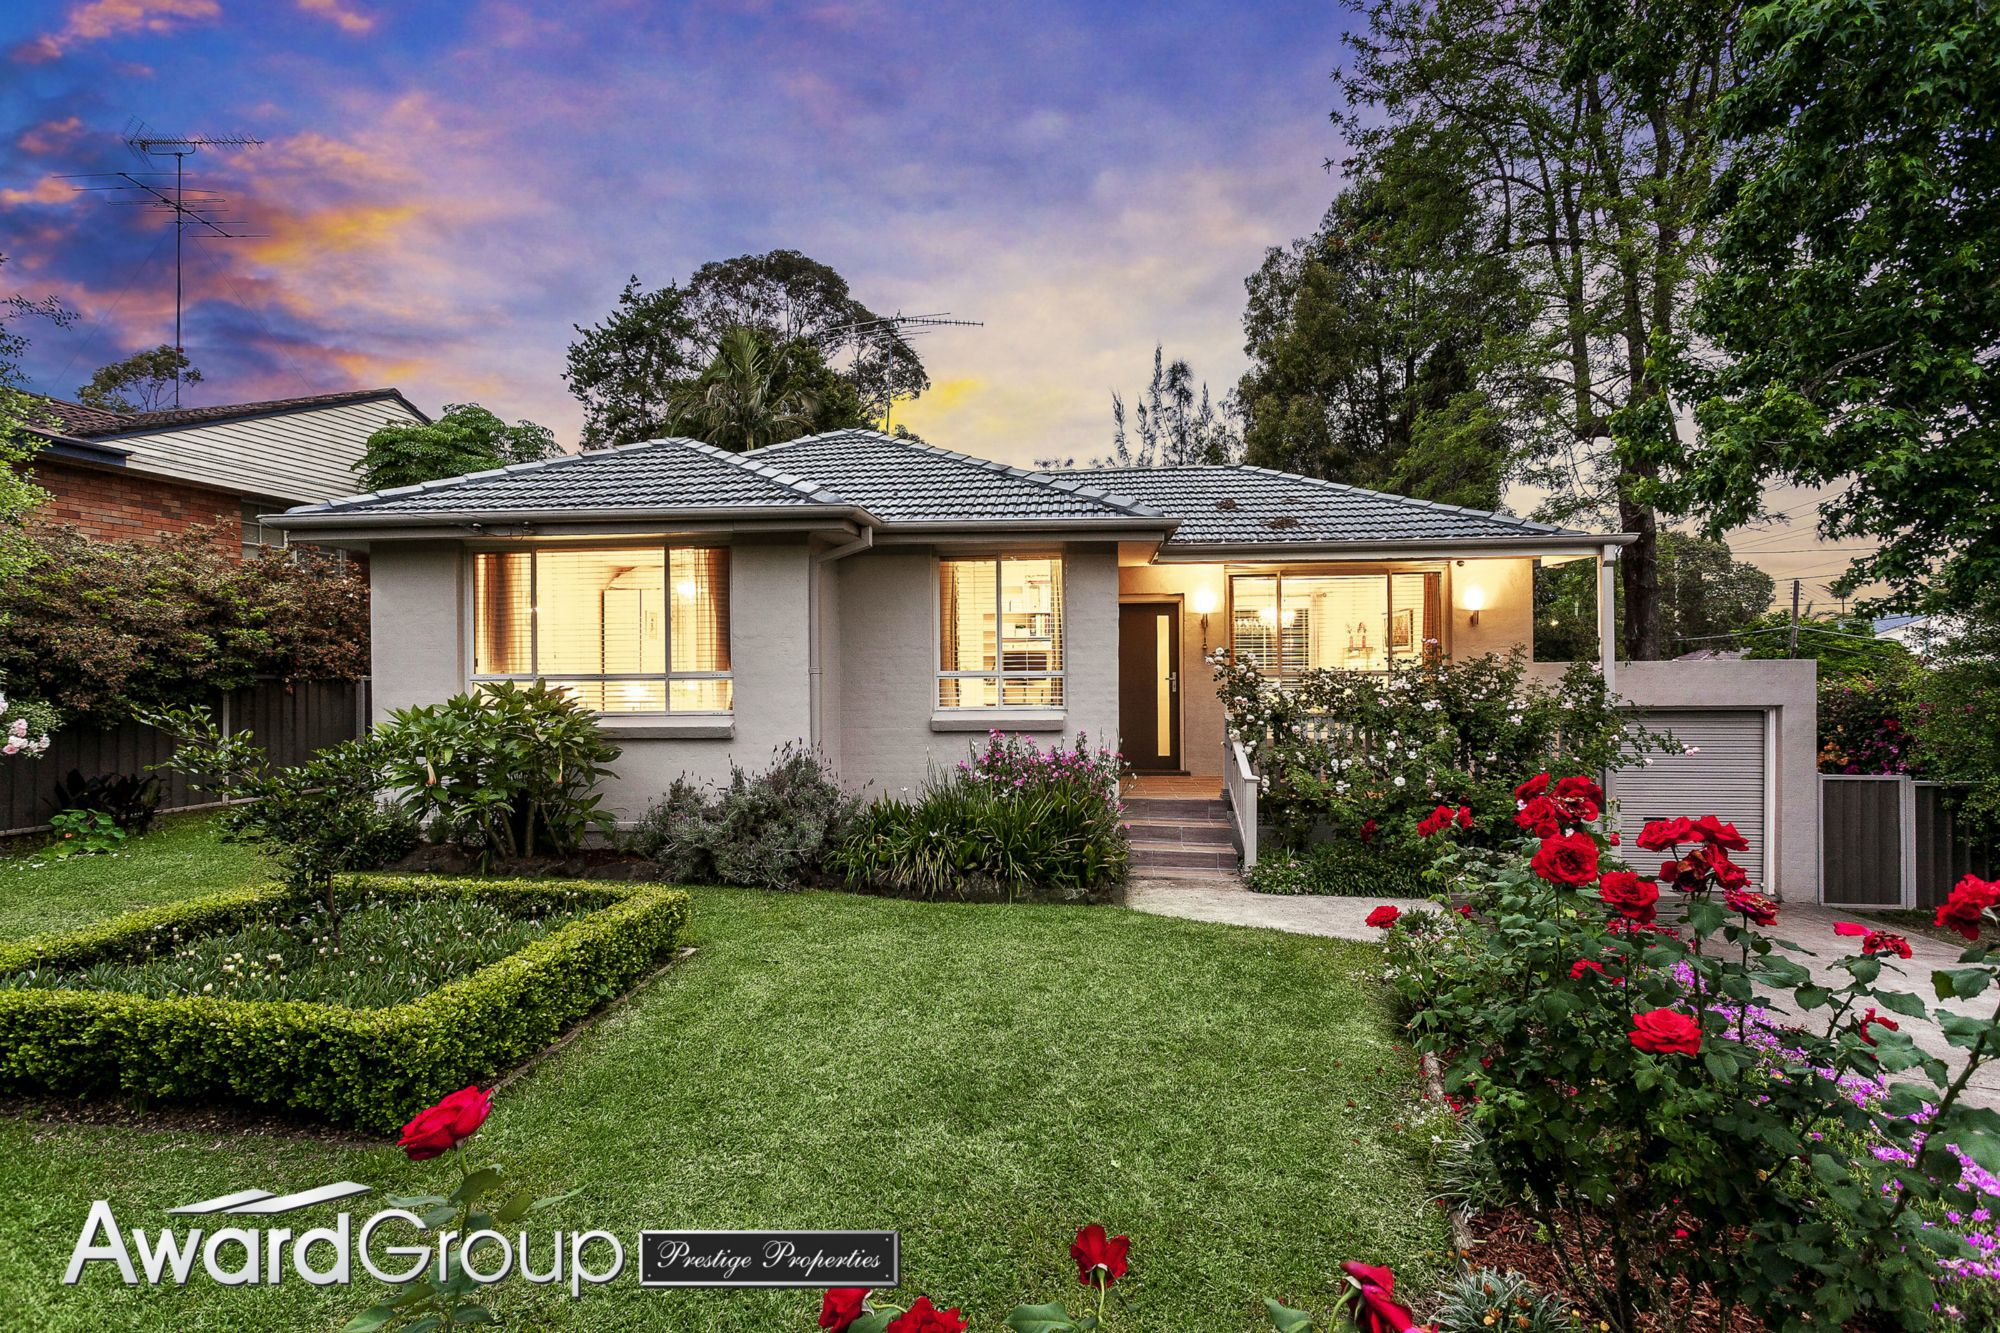 Picture of 50. Cook Street, Baulkham Hills